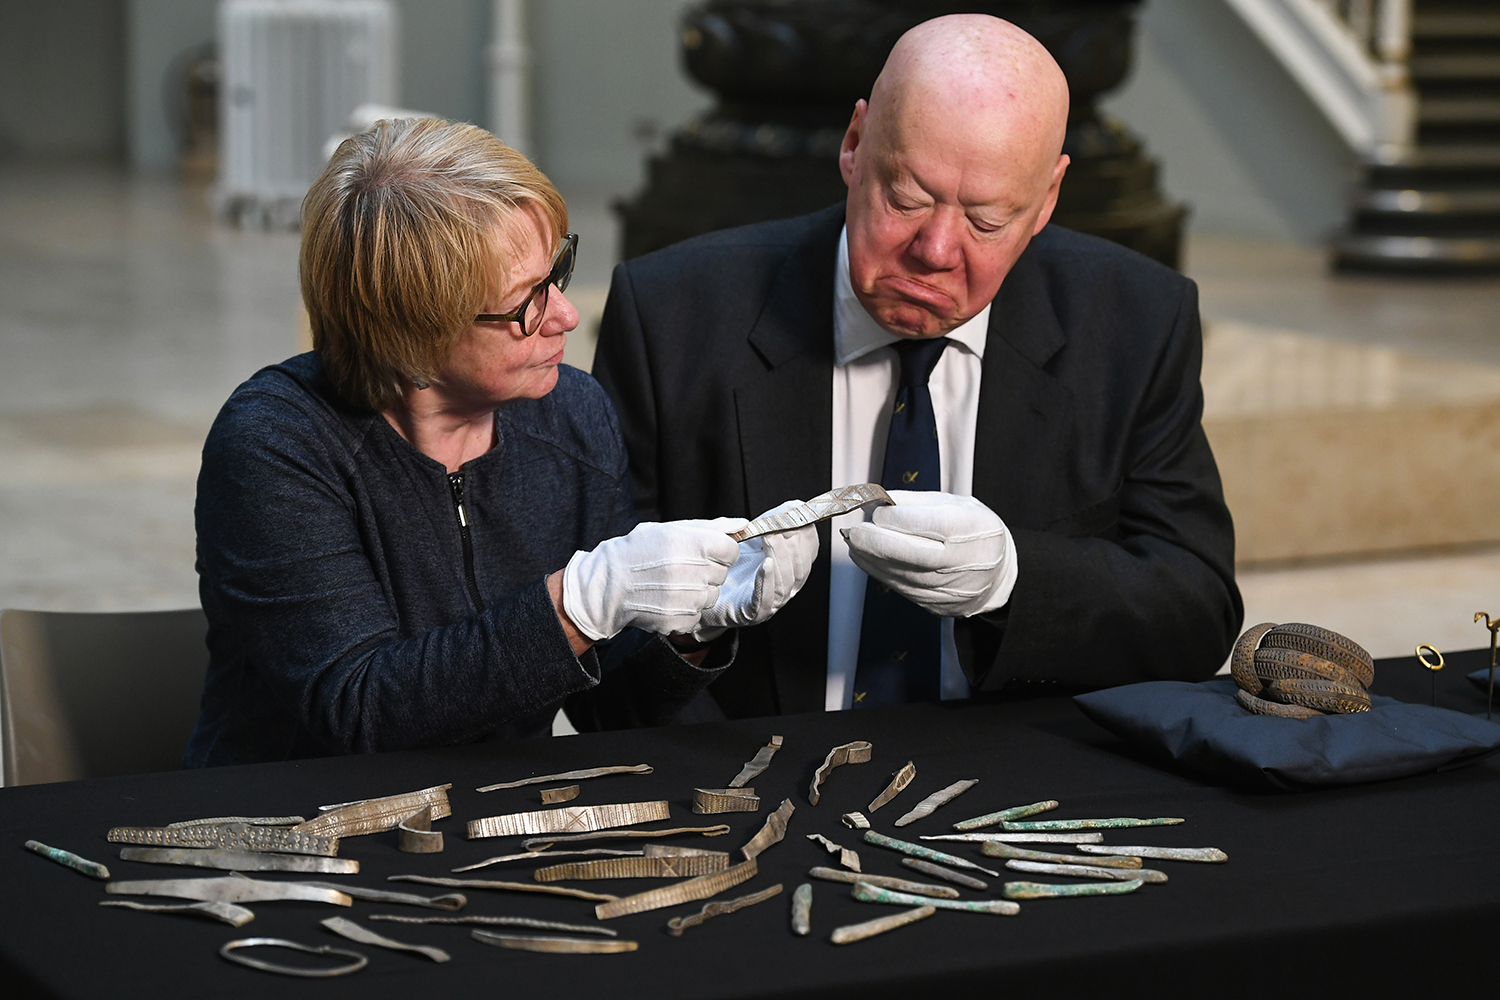 EDINBURGH, SCOTLAND - OCTOBER 26:  Bruce Minto, Chairman of the Board of Trustees of National Museums and Seona Reid, deputy chair of the National Heritage Memorial Fund view treasures from the Galloway Hoard at the National Museums of Scotland on October 26, 2017 in Edinburgh,Scotland. The National Museum of Scotland has toaday announced that it has secured Britain's biggest hoard of unique Viking age treasures after raising nearly two million pounds in the space of five months. Contributions from The National Heritage Memorial Fund and the Scottish Government along with widespread public support secured the future of the treasures for the nation.  (Photo by Jeff J Mitchell/Getty Images)